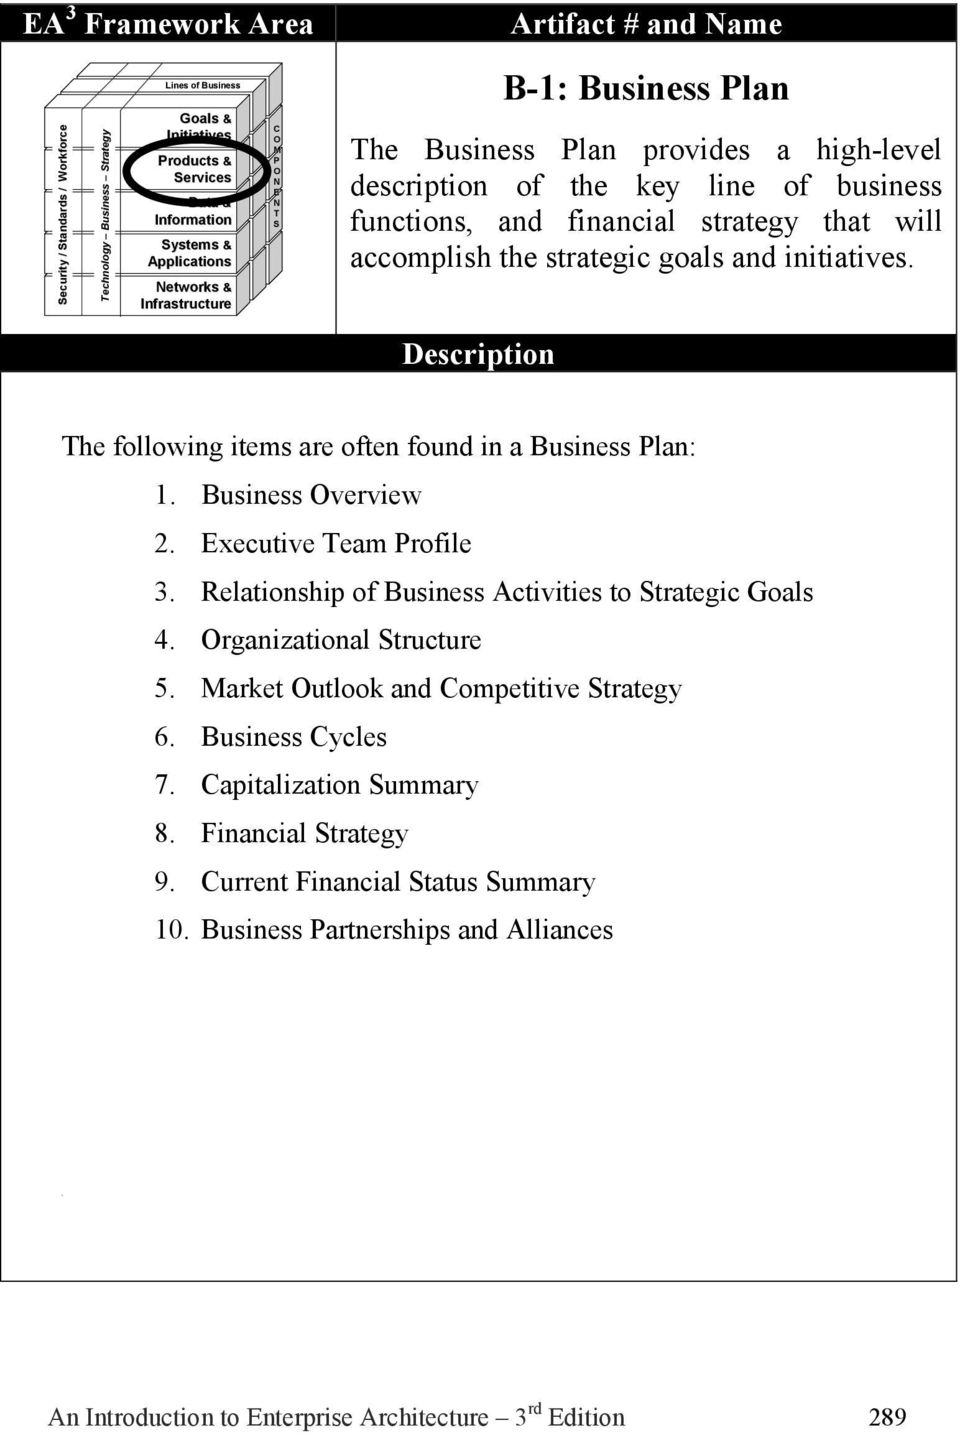 Business verview 2. xecutive eam rofile 3. Relationship of Business Activities to trategic Goals 4. rganizational tructure 5. arket utlook and ompetitive trategy 6.